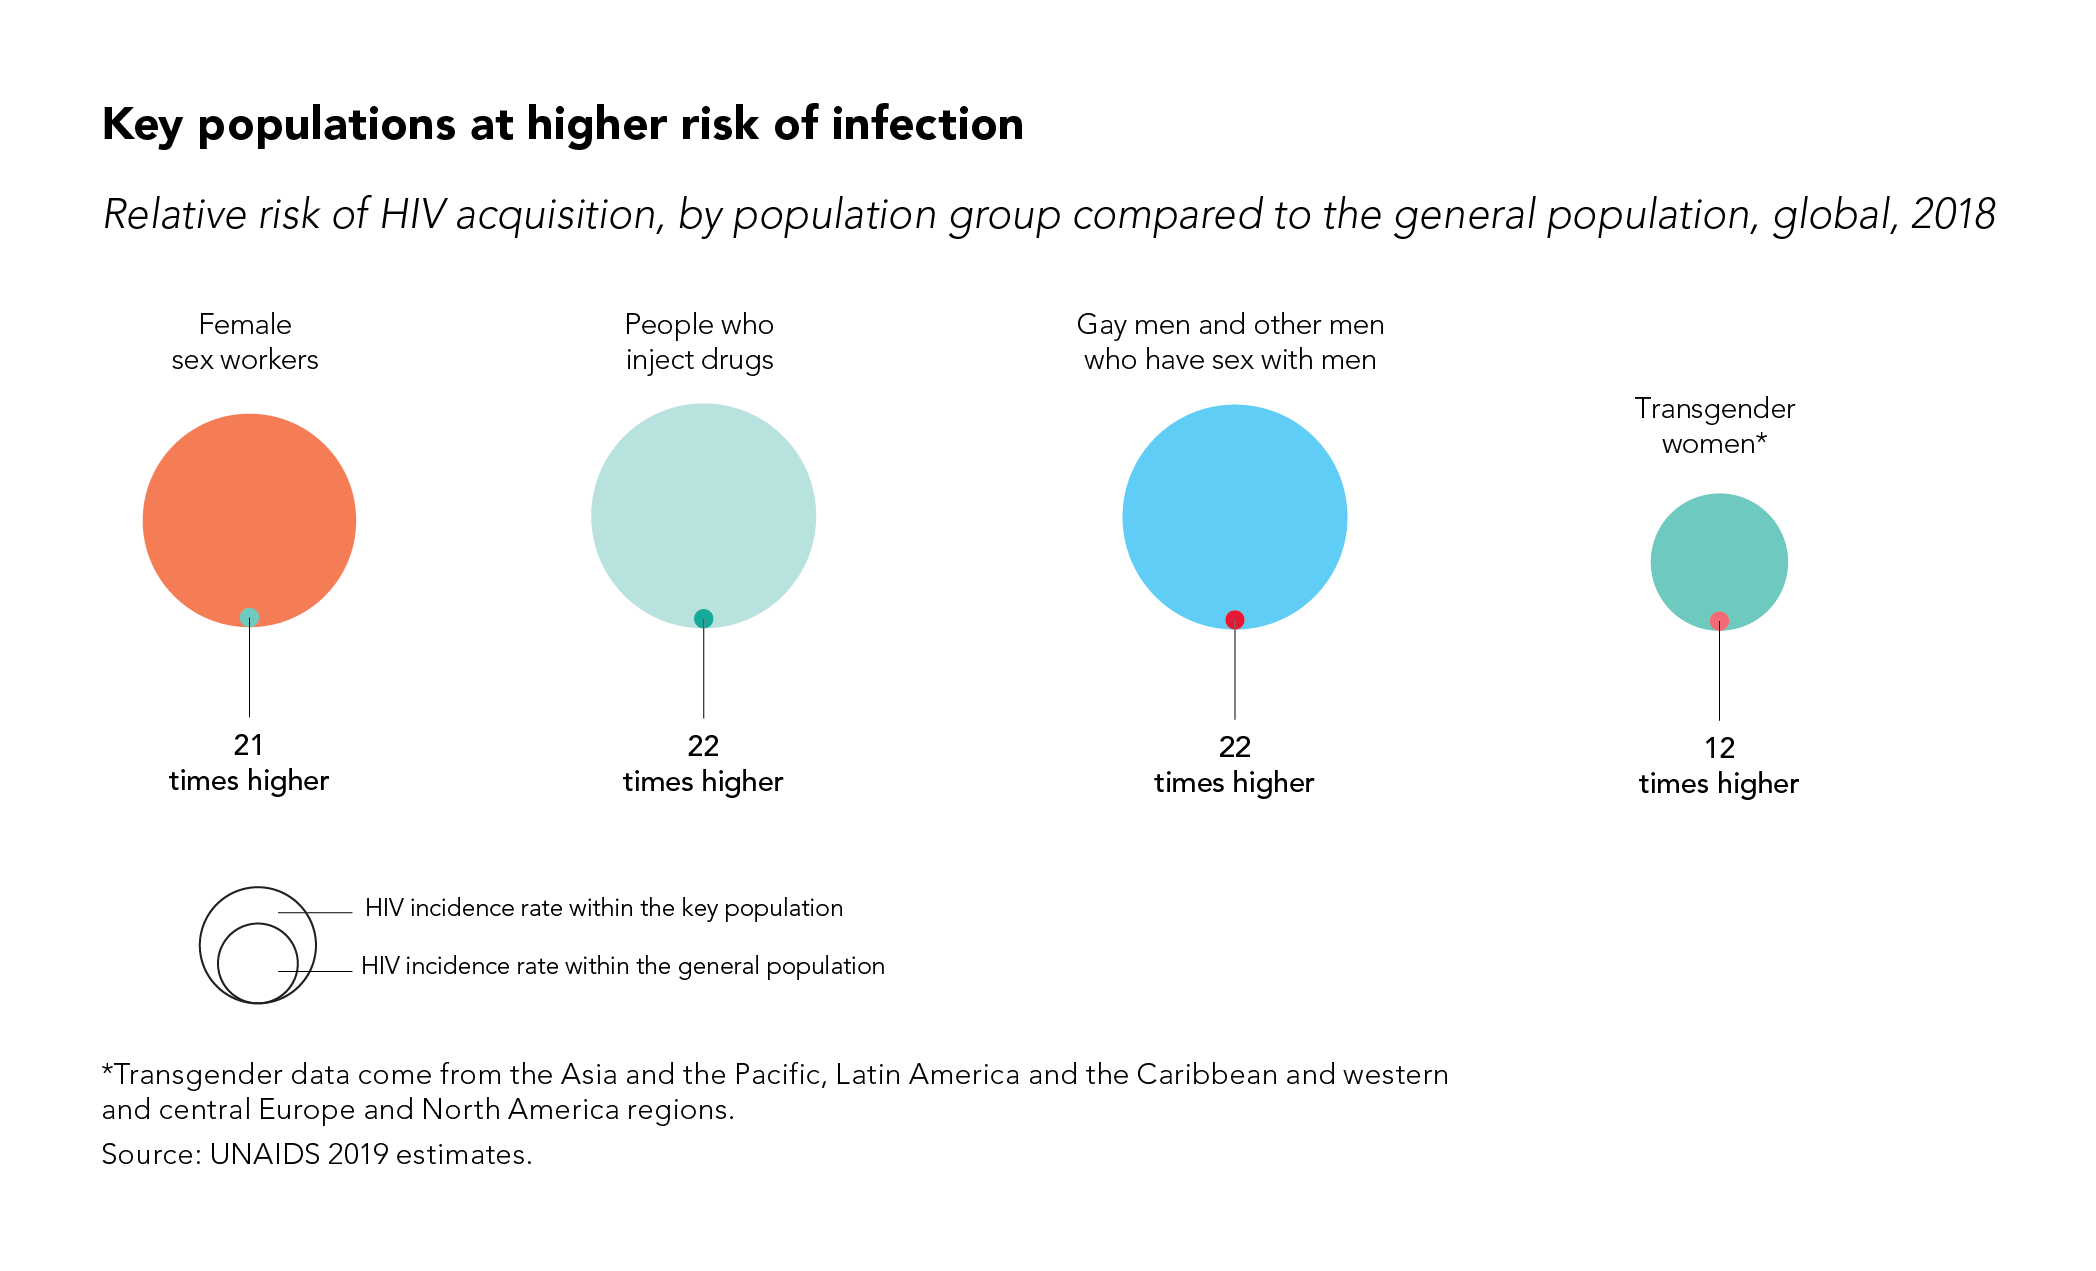 Key populations at higher risk of infection 2096px